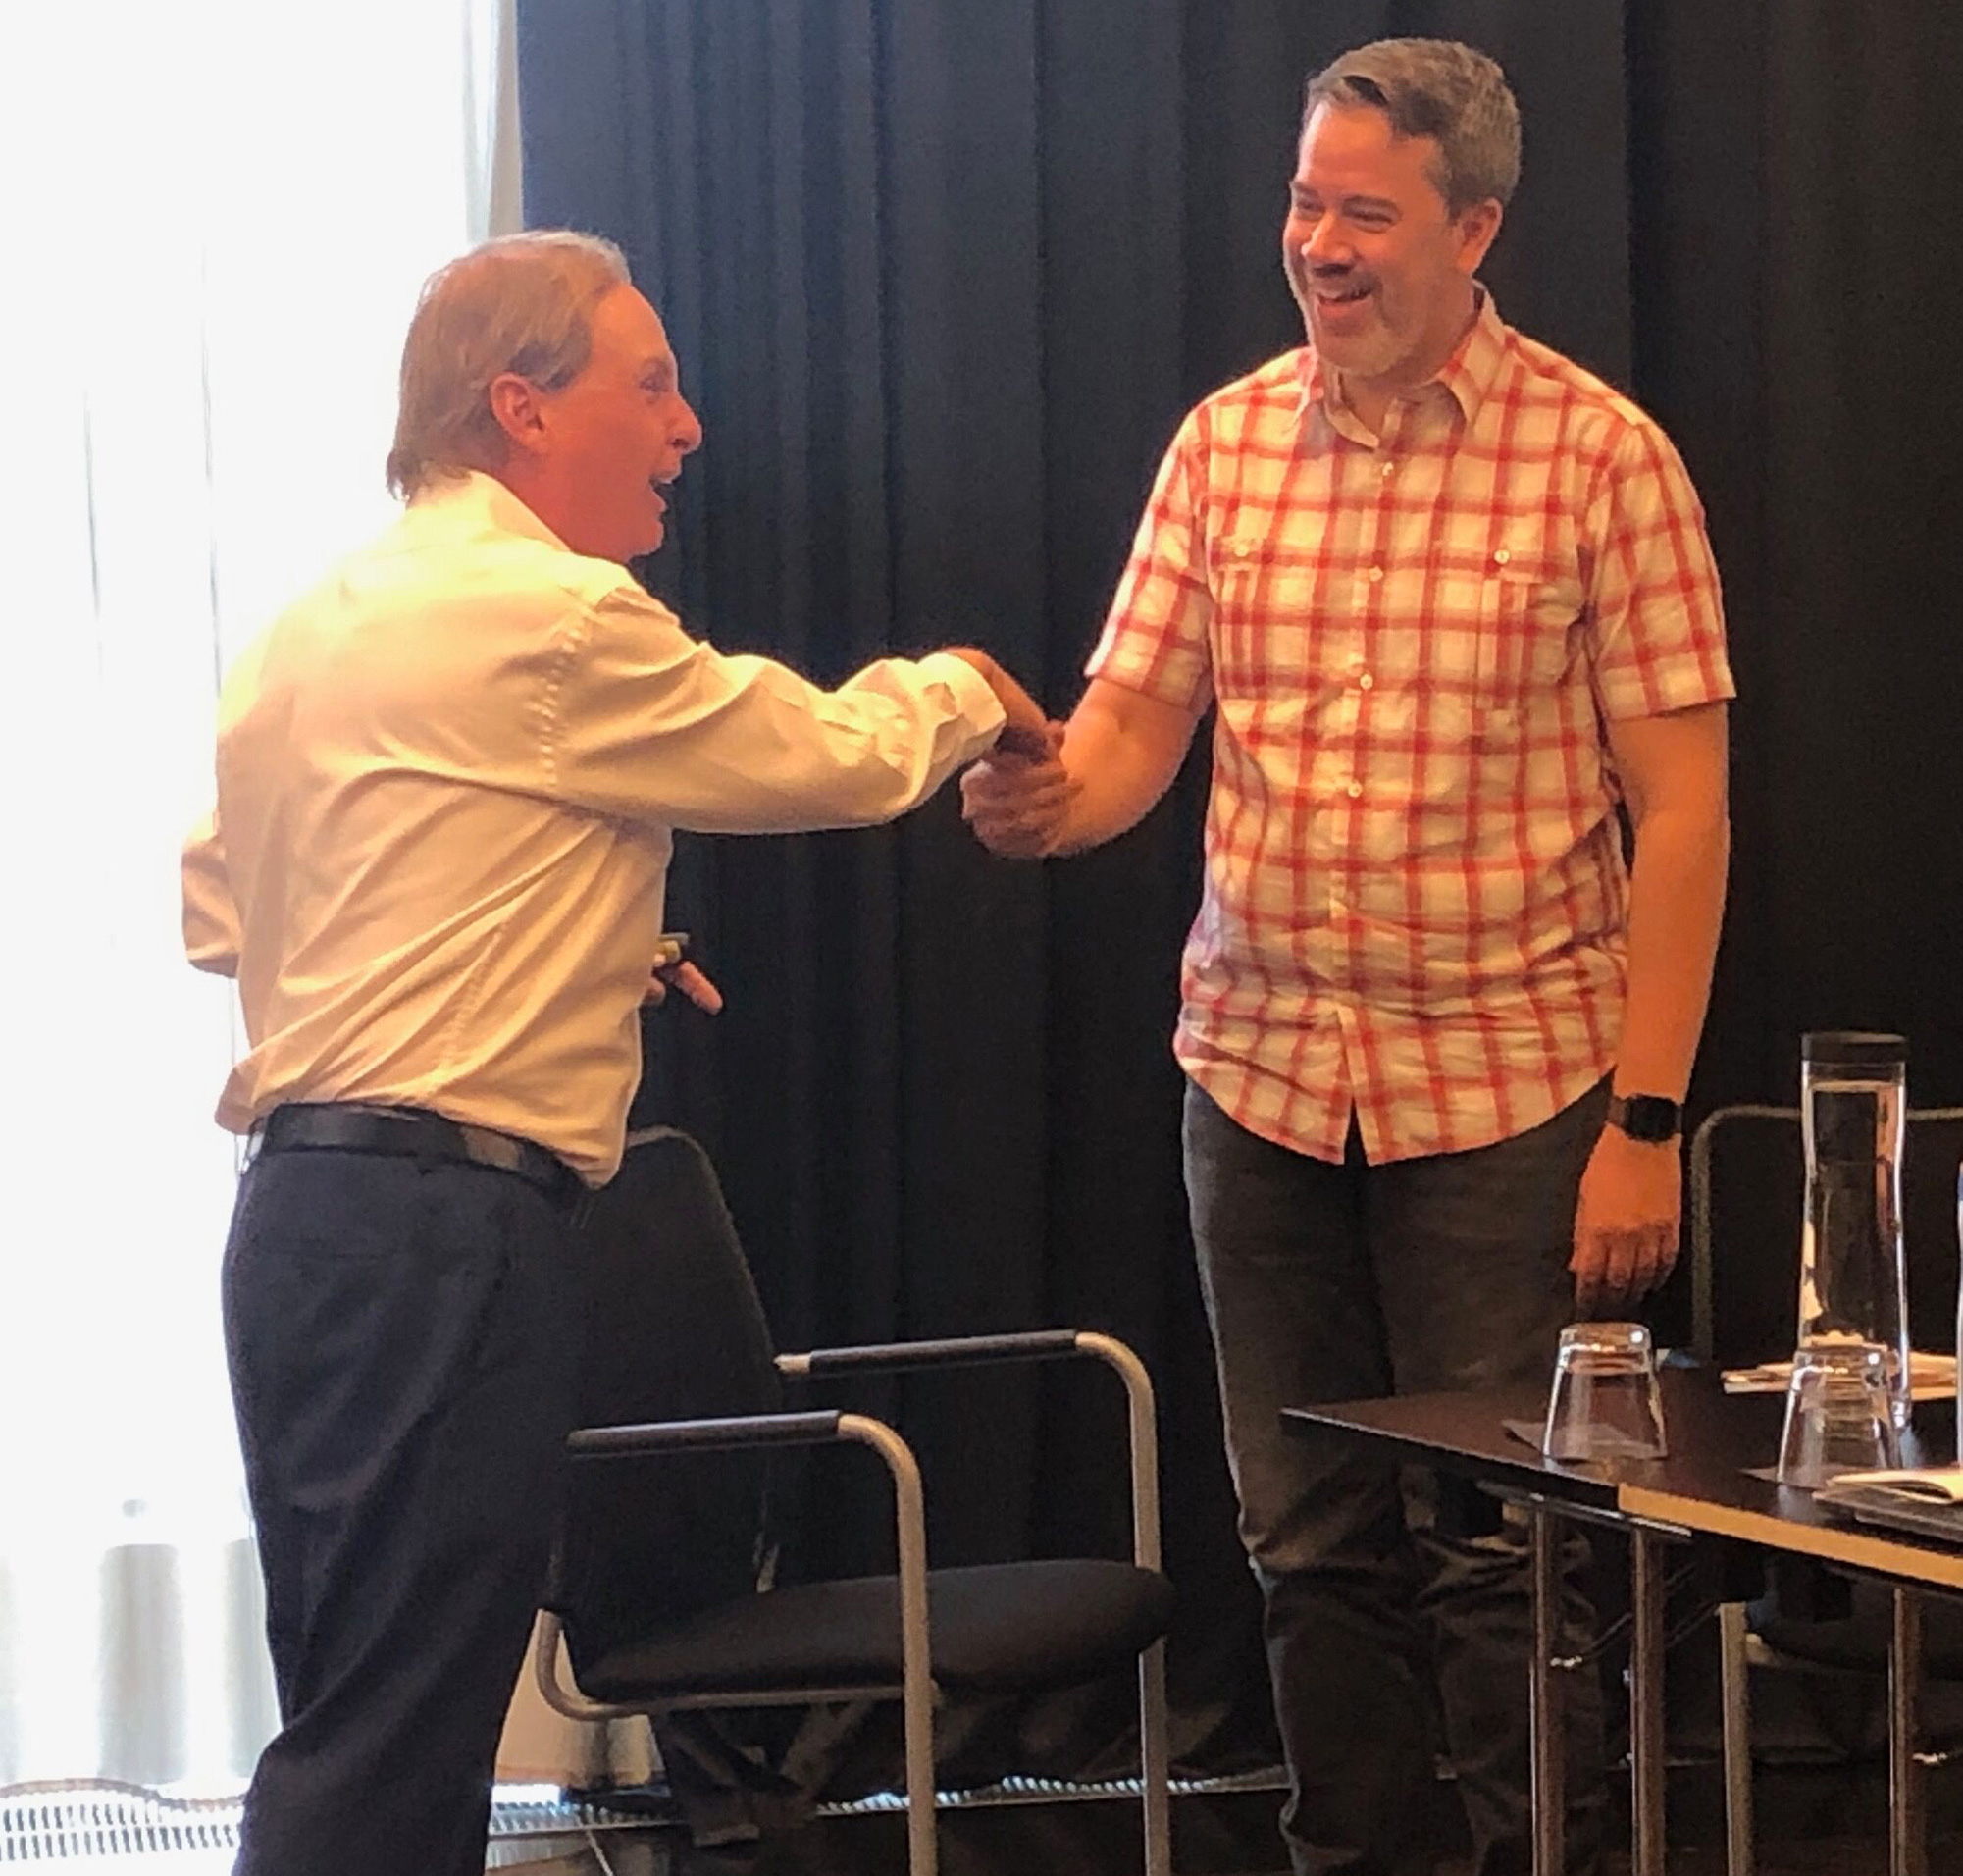 Paul Boross executive coaching client in Germany in the art and science of instant rapport